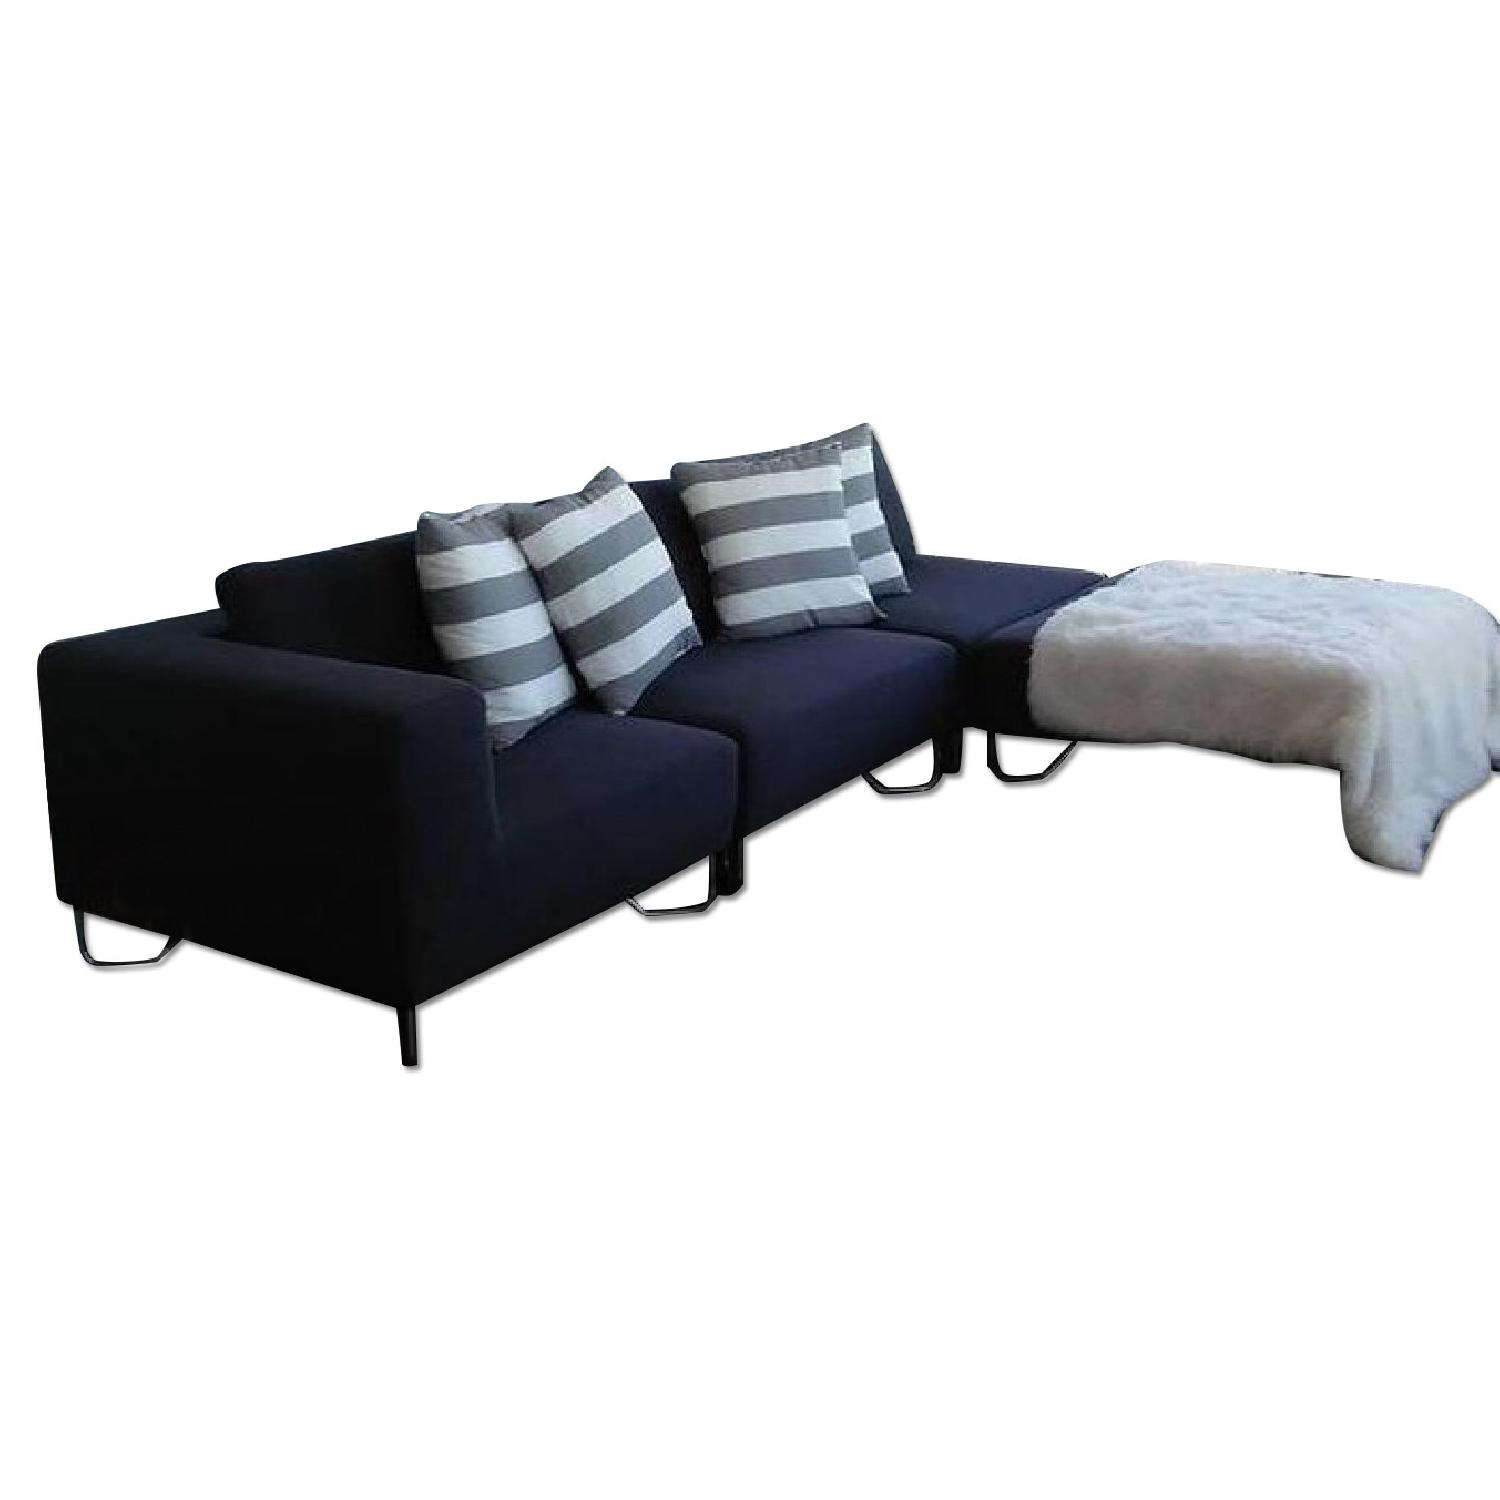 Cb2 district sectional sofa w left arm chaise aptdeco for 2 arm chaise lounge